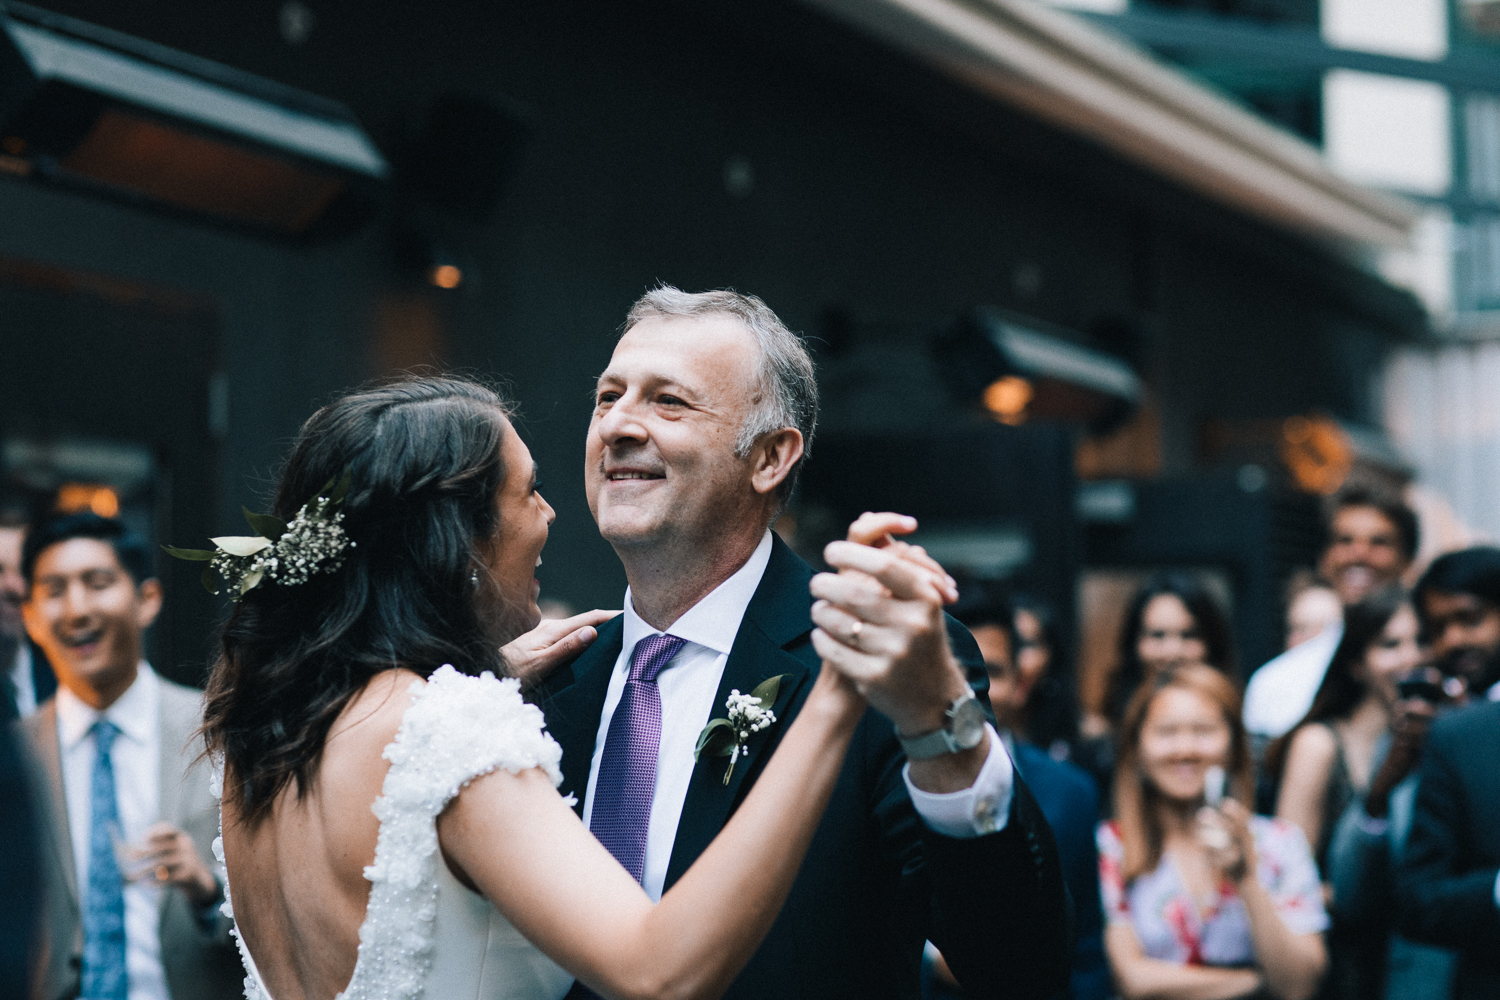 2019.06.01 Ana + Richard SF Wedding Blog Photos -0380.jpg